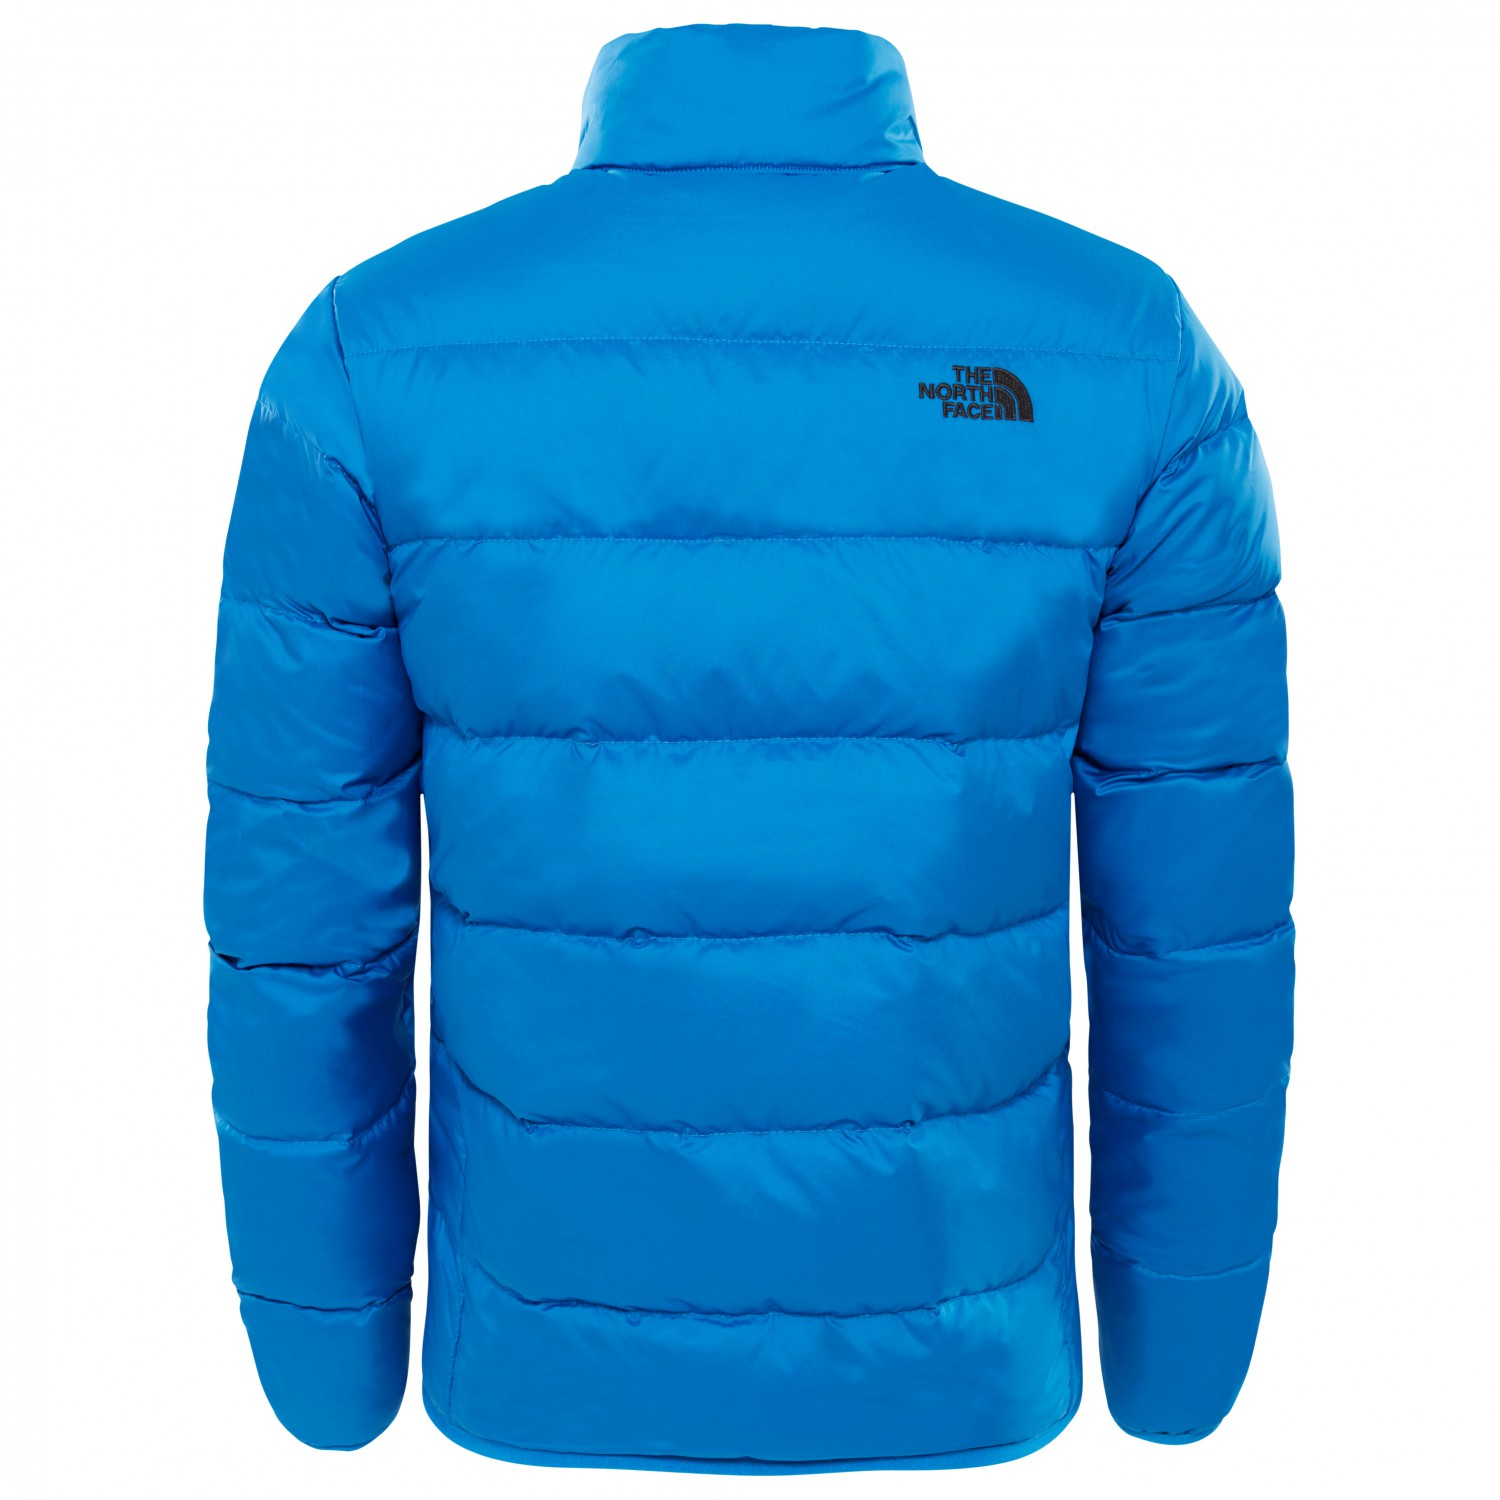 North Face Acquista Piumino Giacca The Jacket In Bimbo Andes gSZZqw